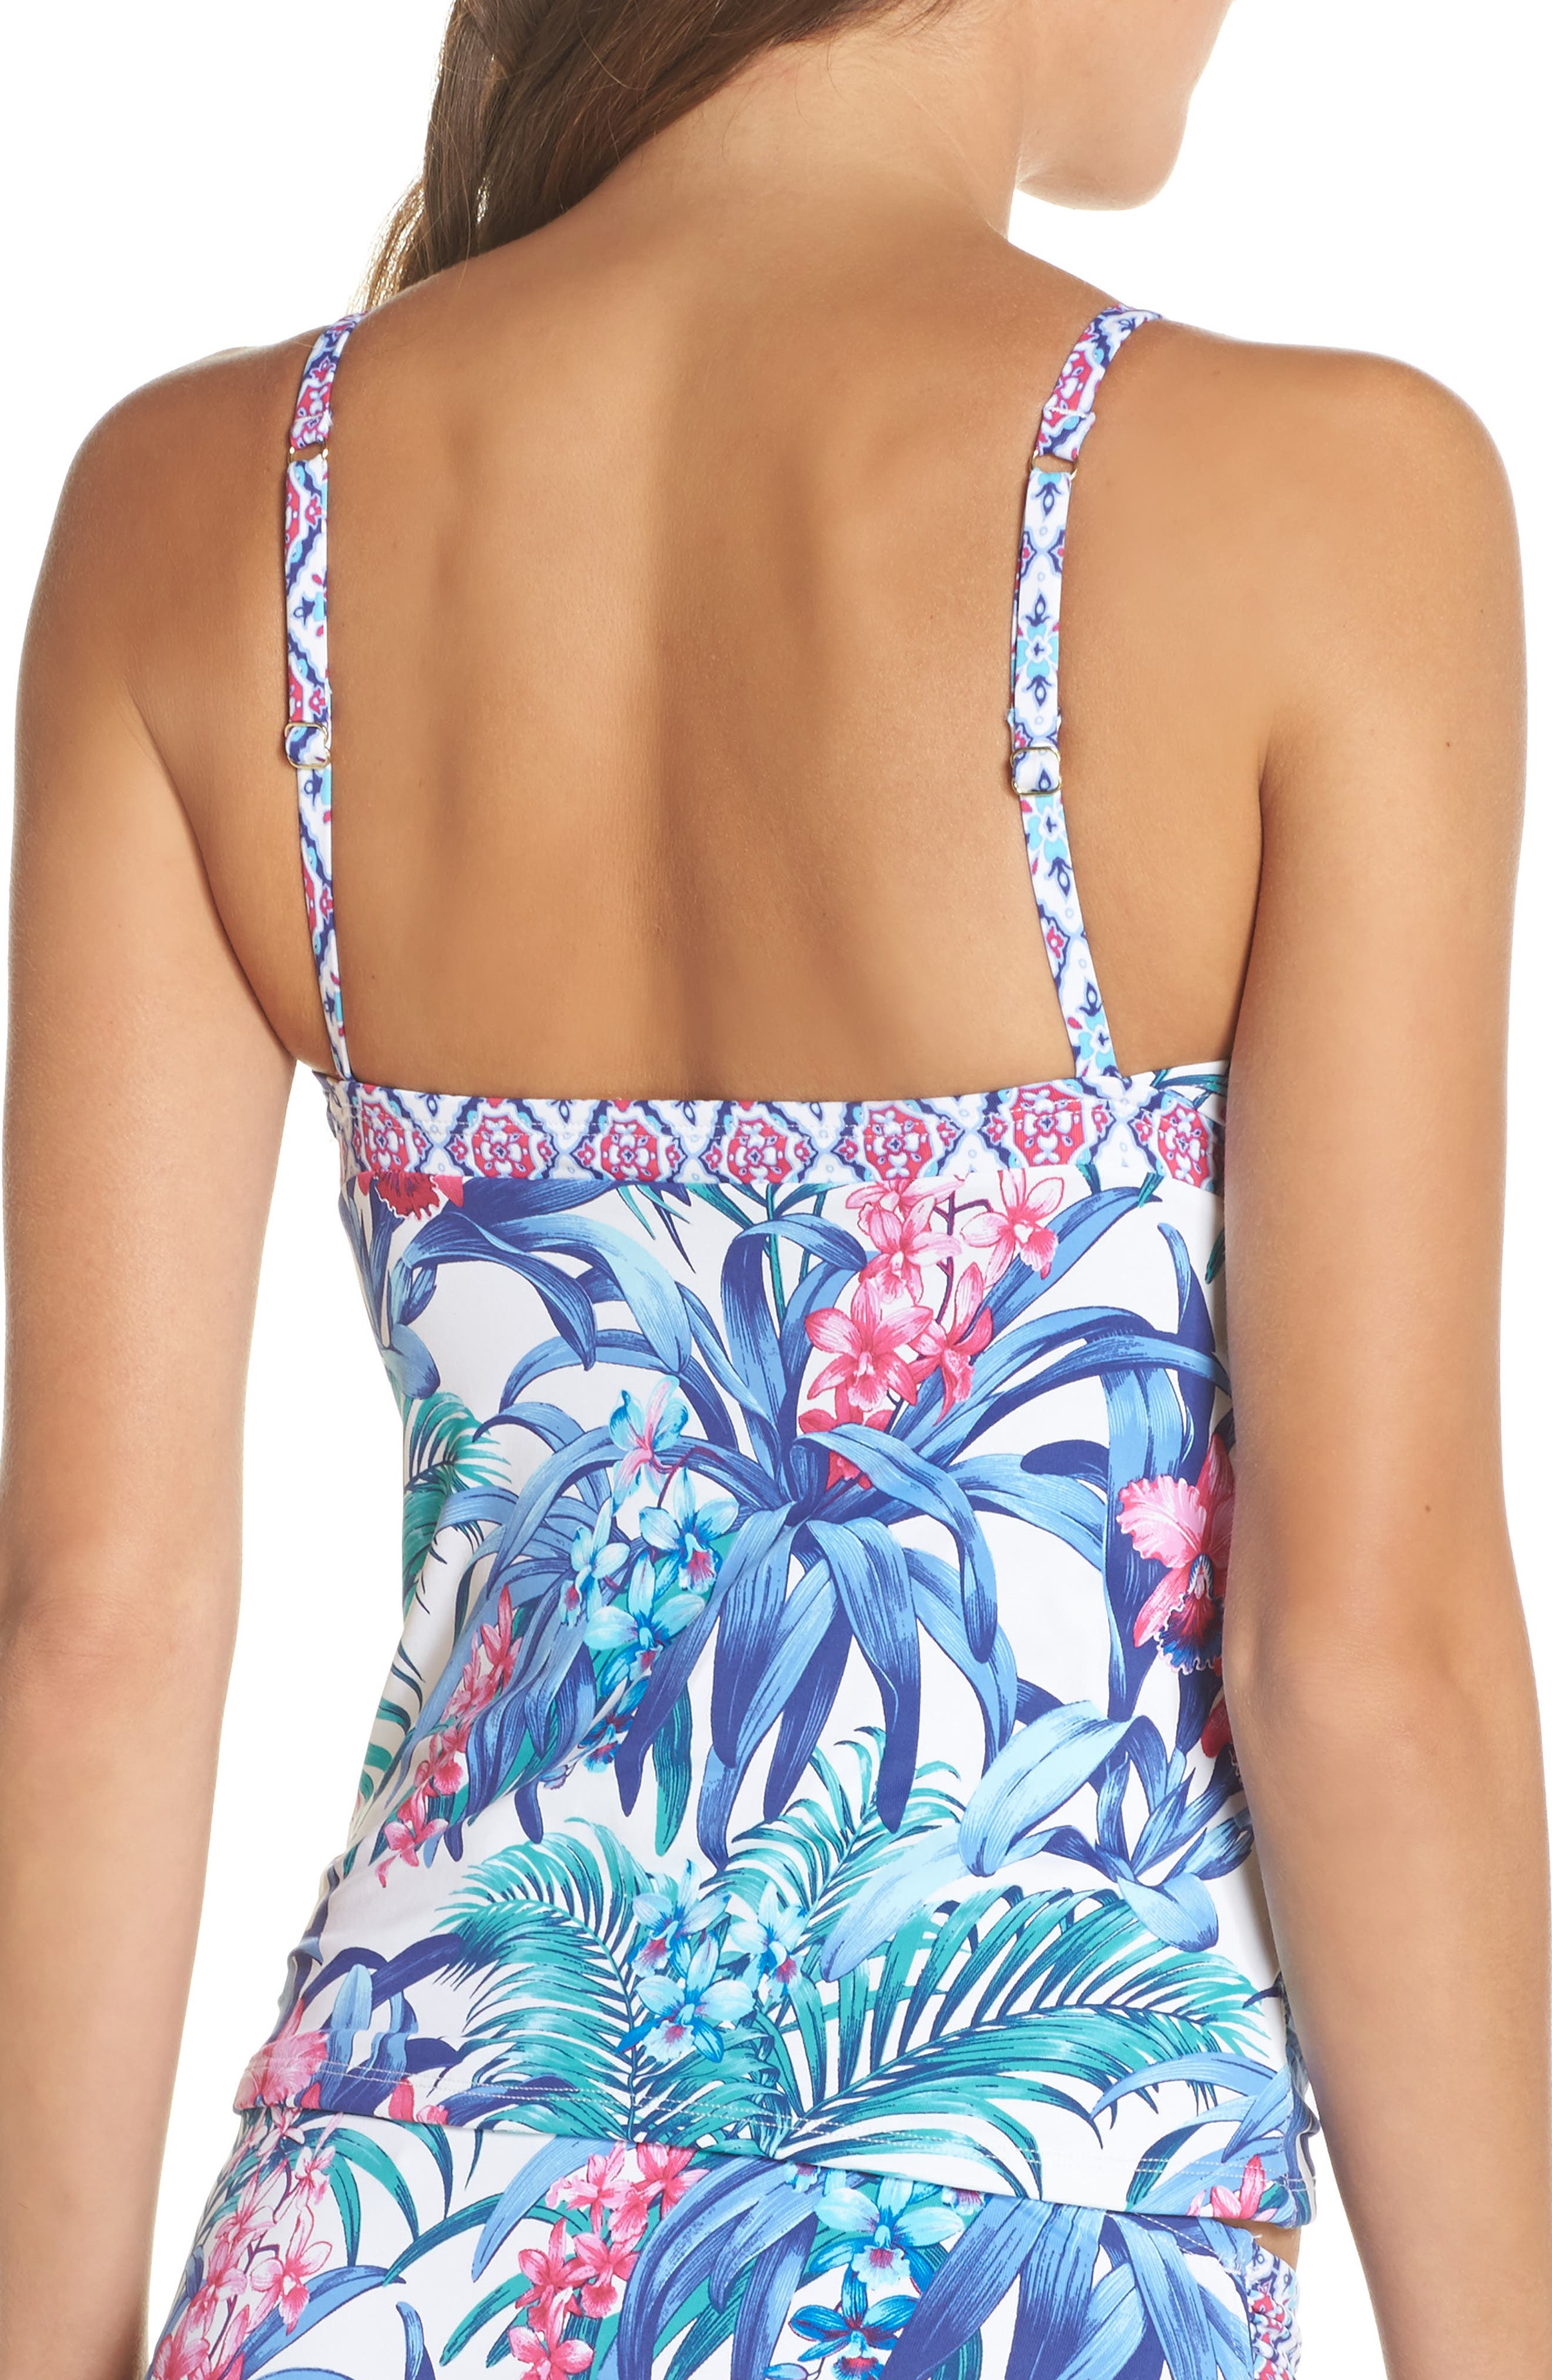 Majorelle Tankini Top,                             Alternate thumbnail 2, color,                             100